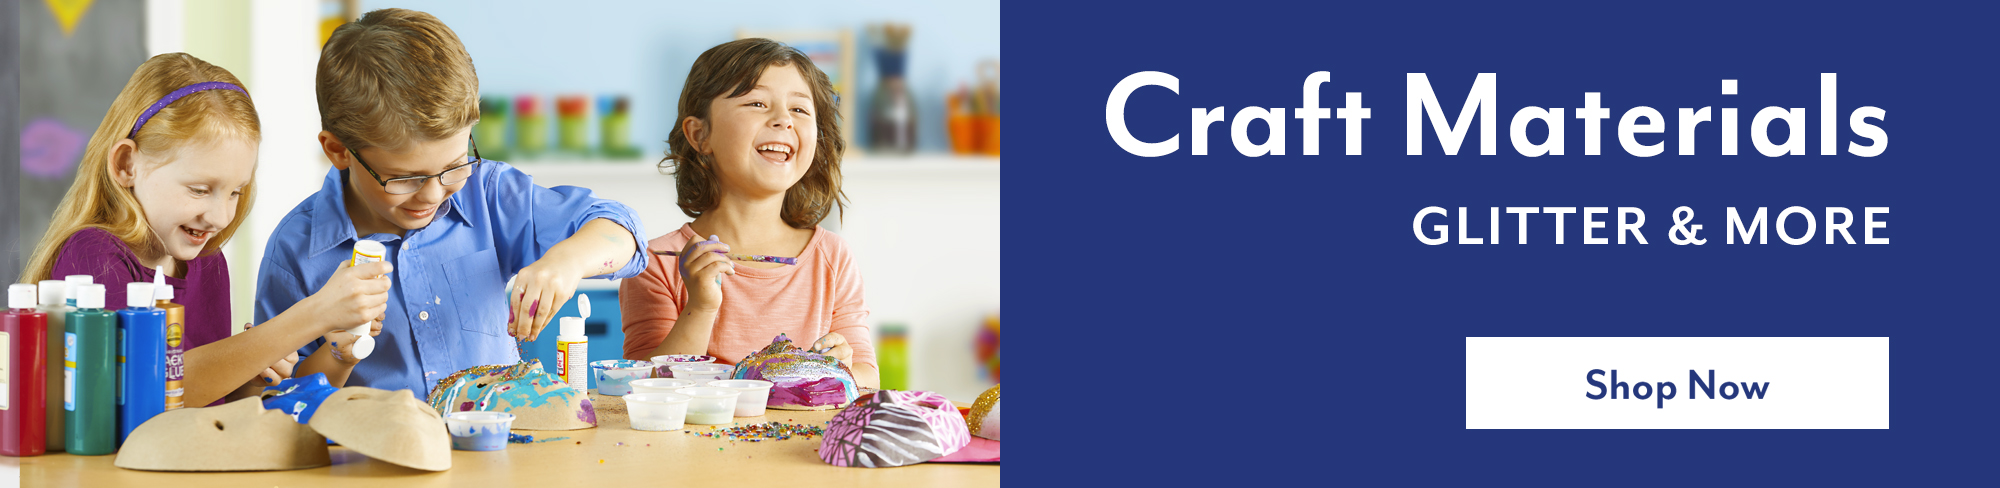 Craft materials - glitter and more - Shop Now